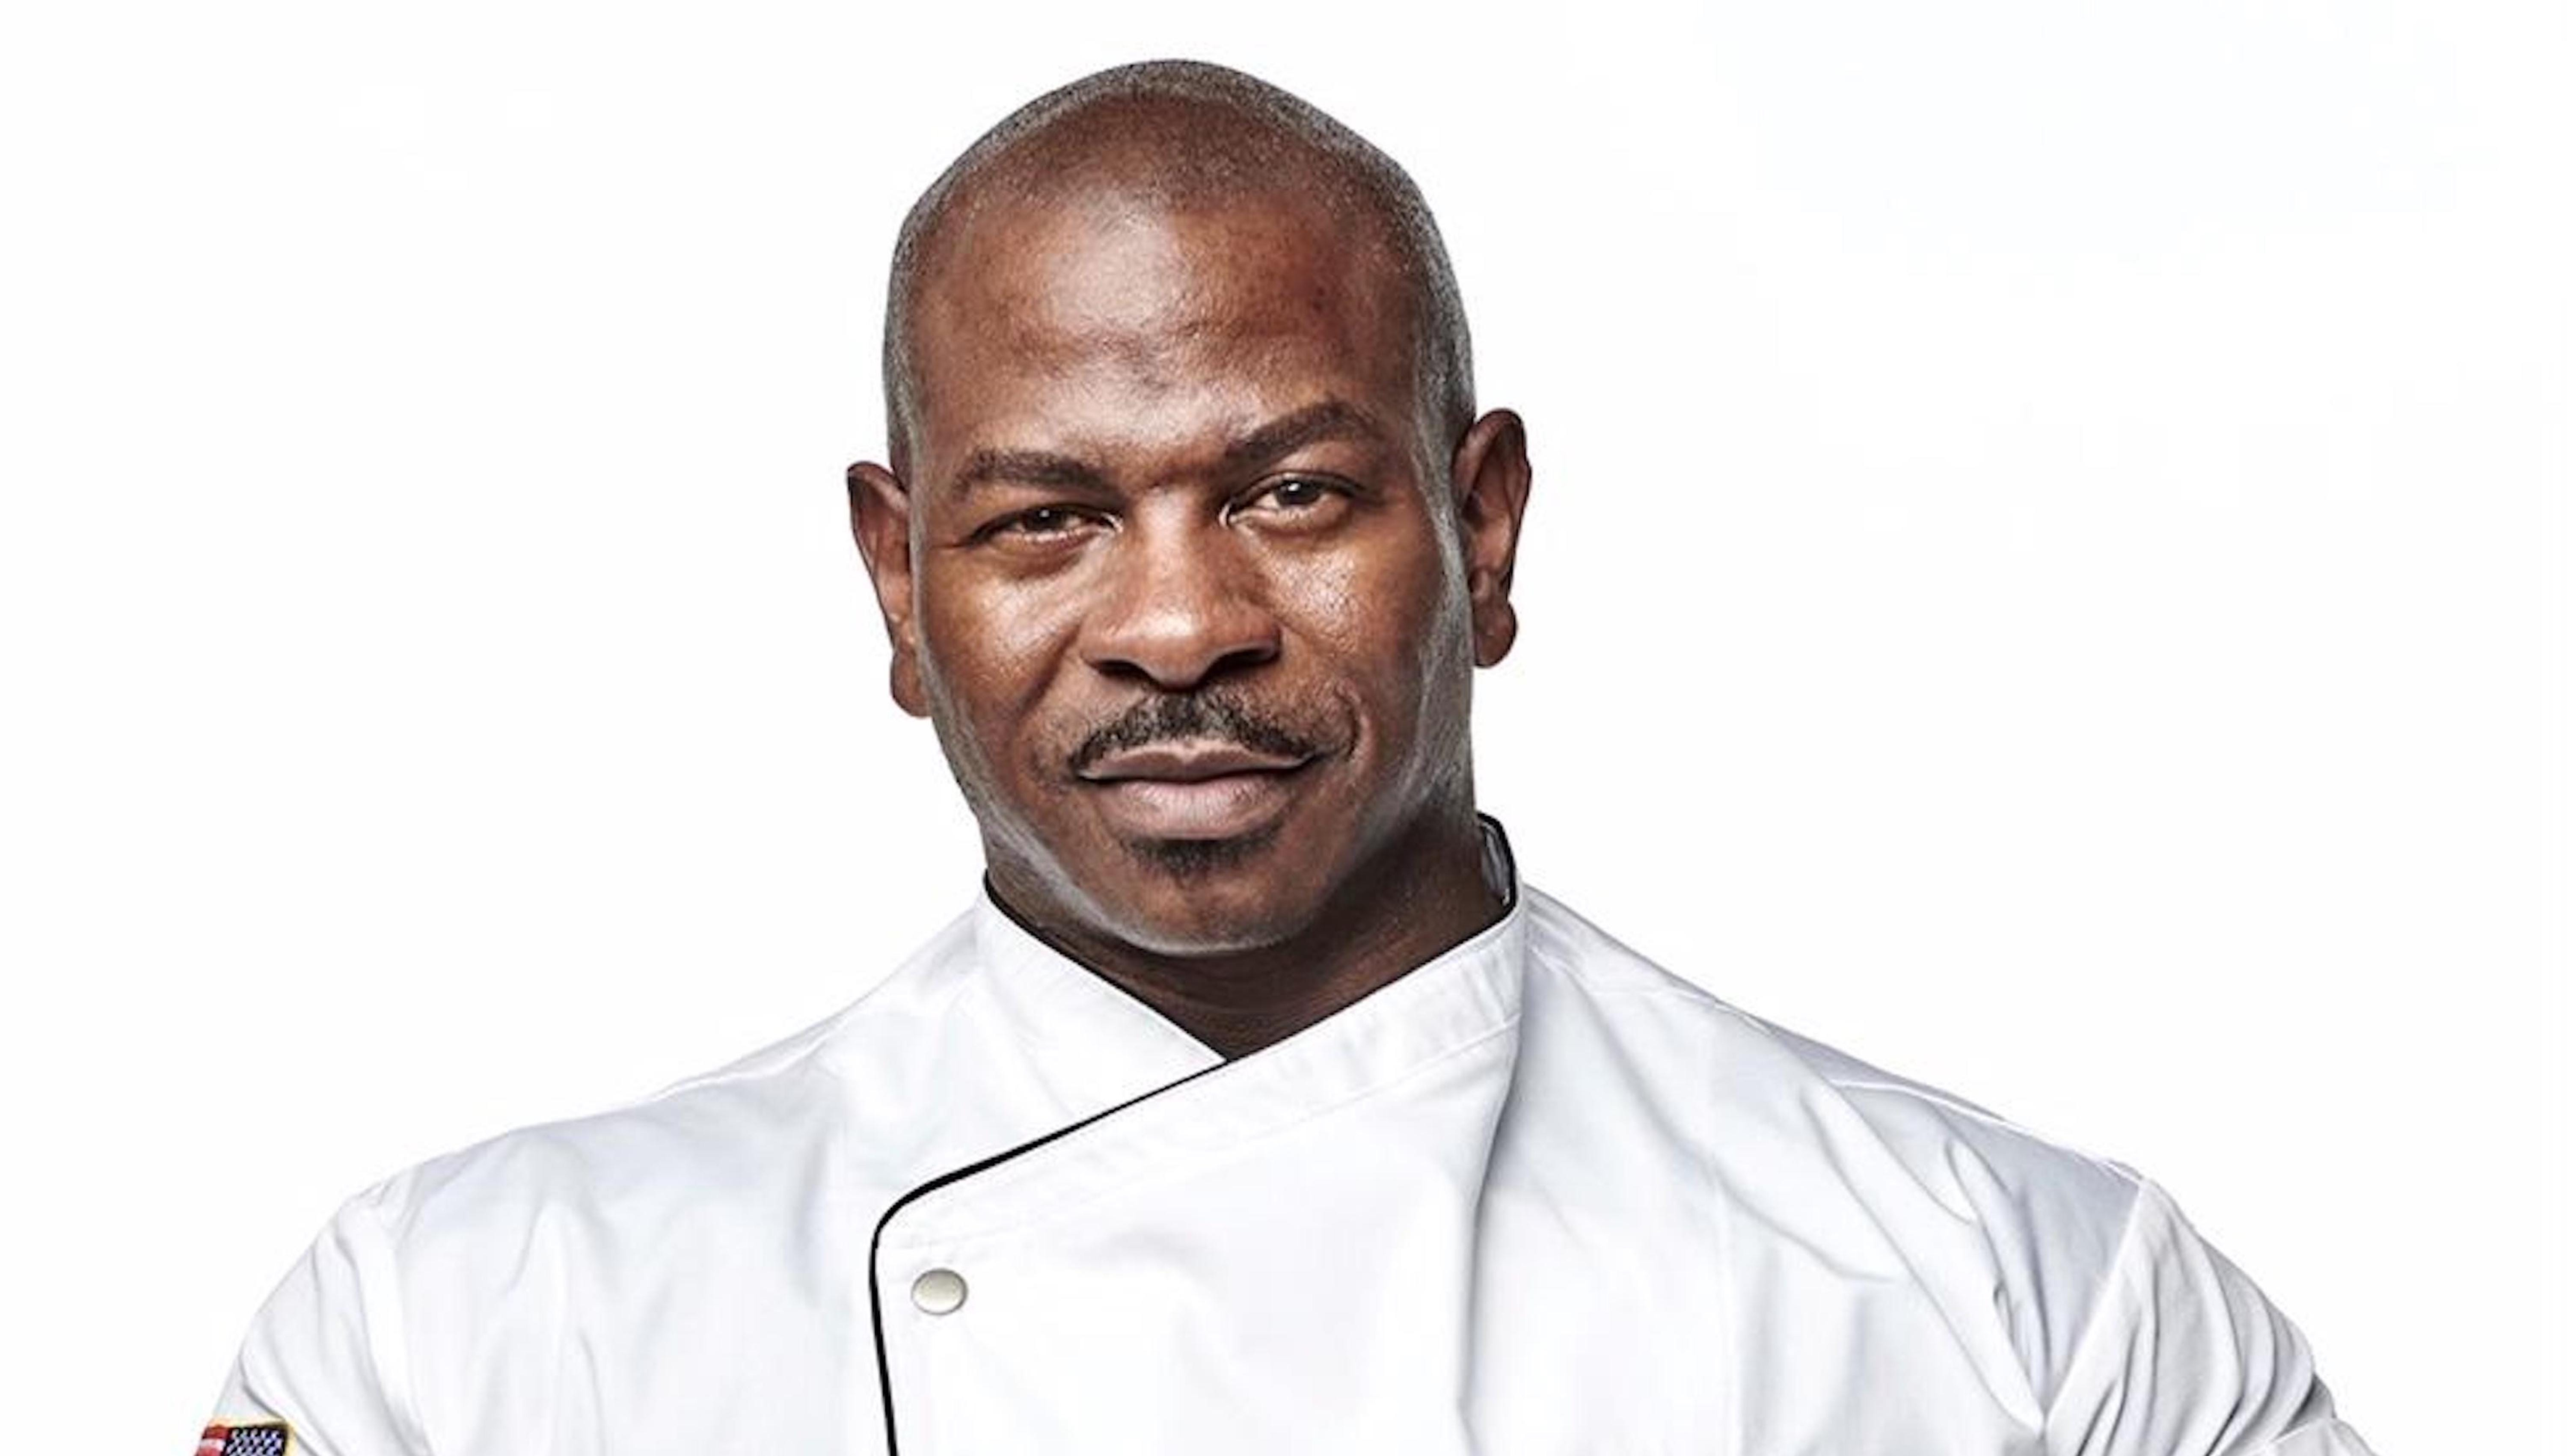 This Mississippi-born chef stayed true to himself. Now he cooks for President Trump.